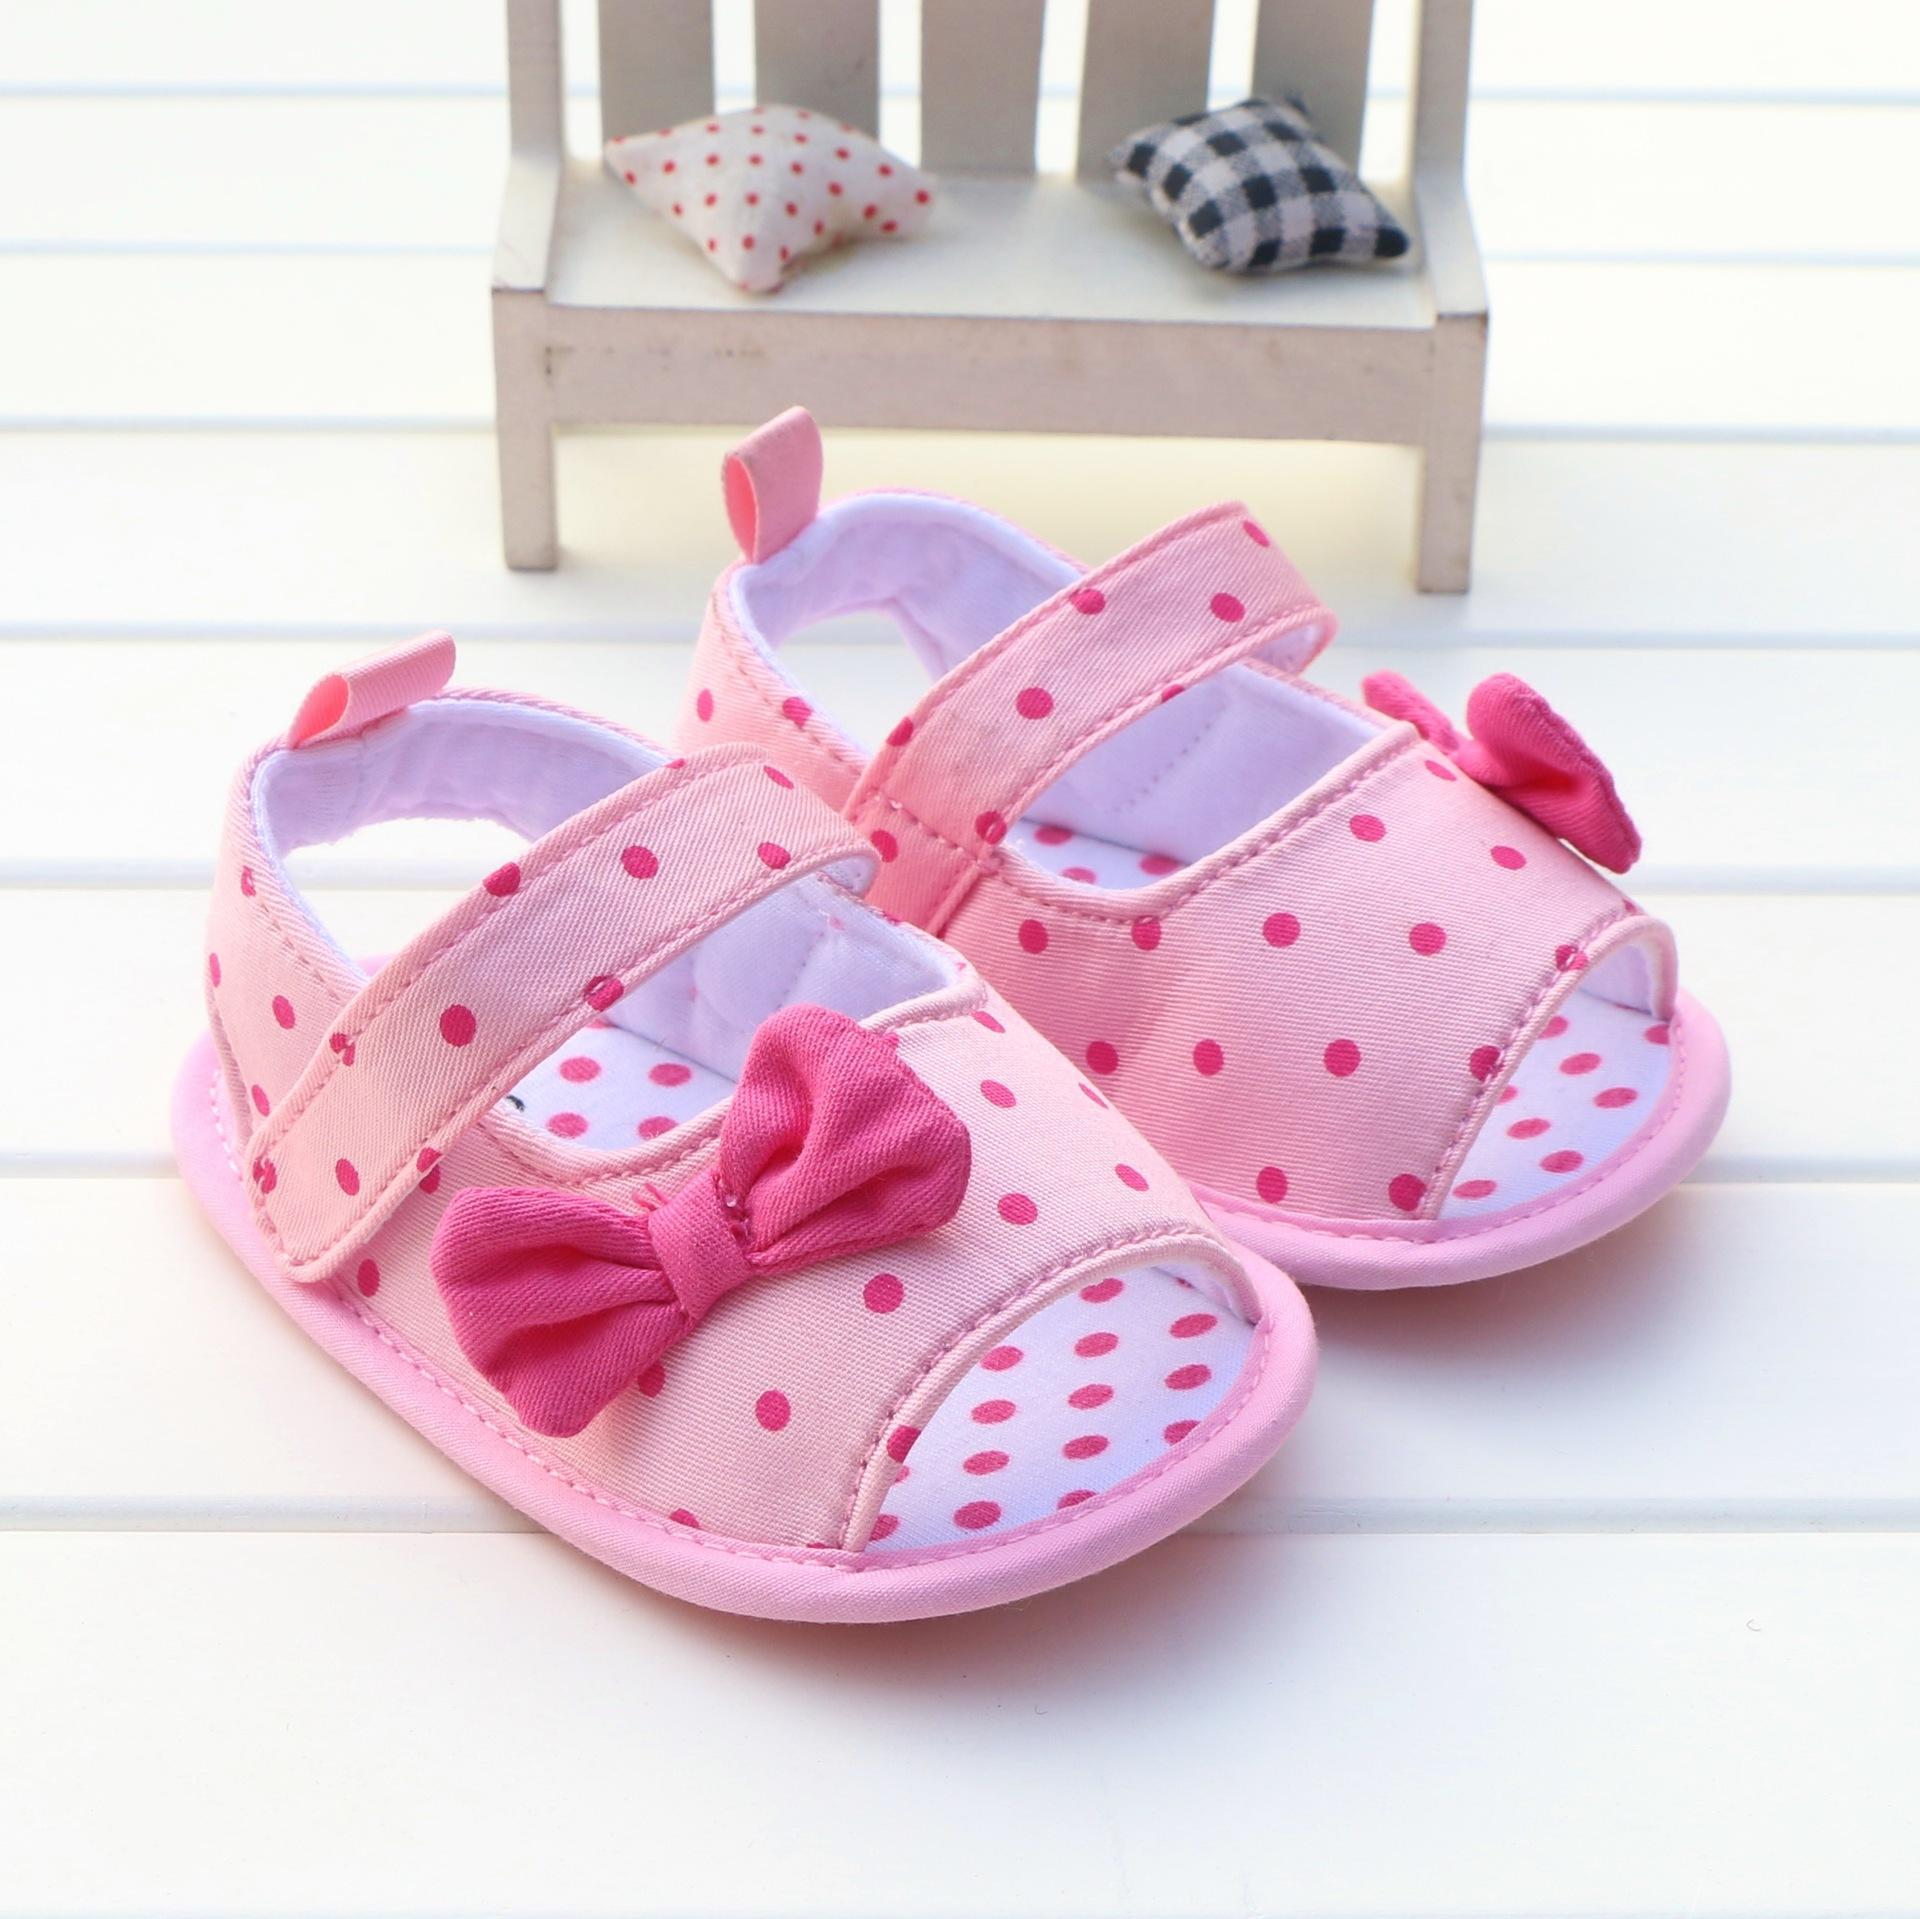 2018 Wholesale 2017 Summer For 0 1 Years Old Baby Girl Shoes Infant